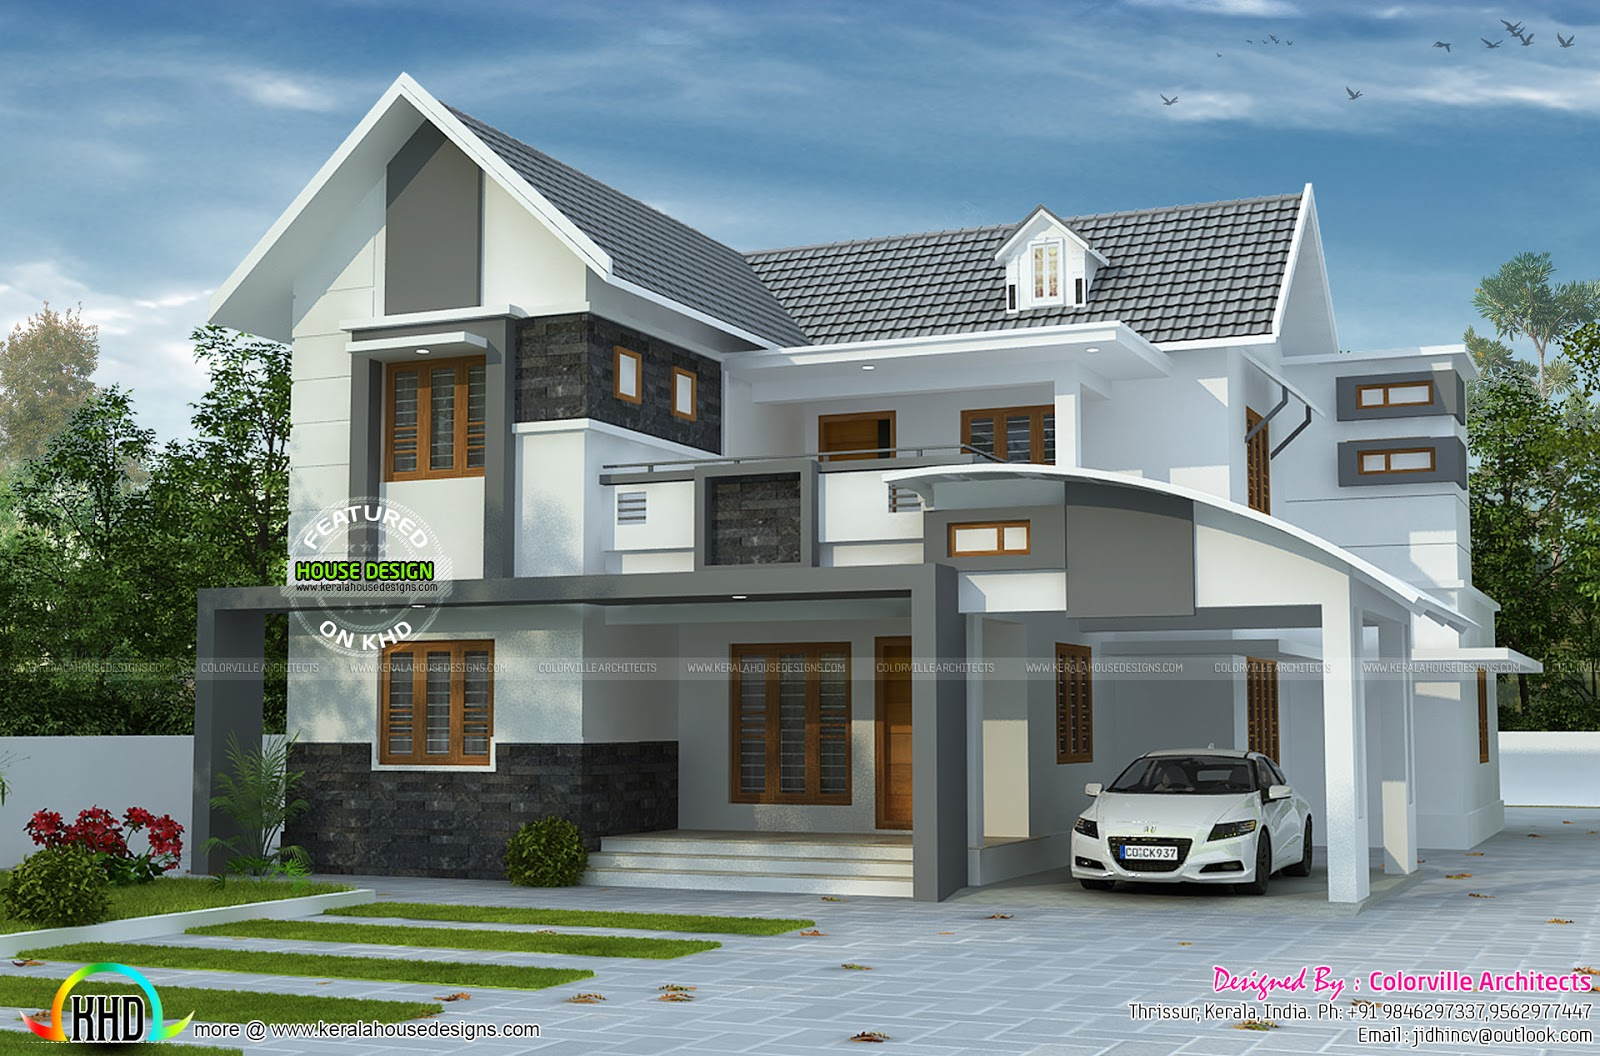 House plan by colorville architects kerala home design for Home and style